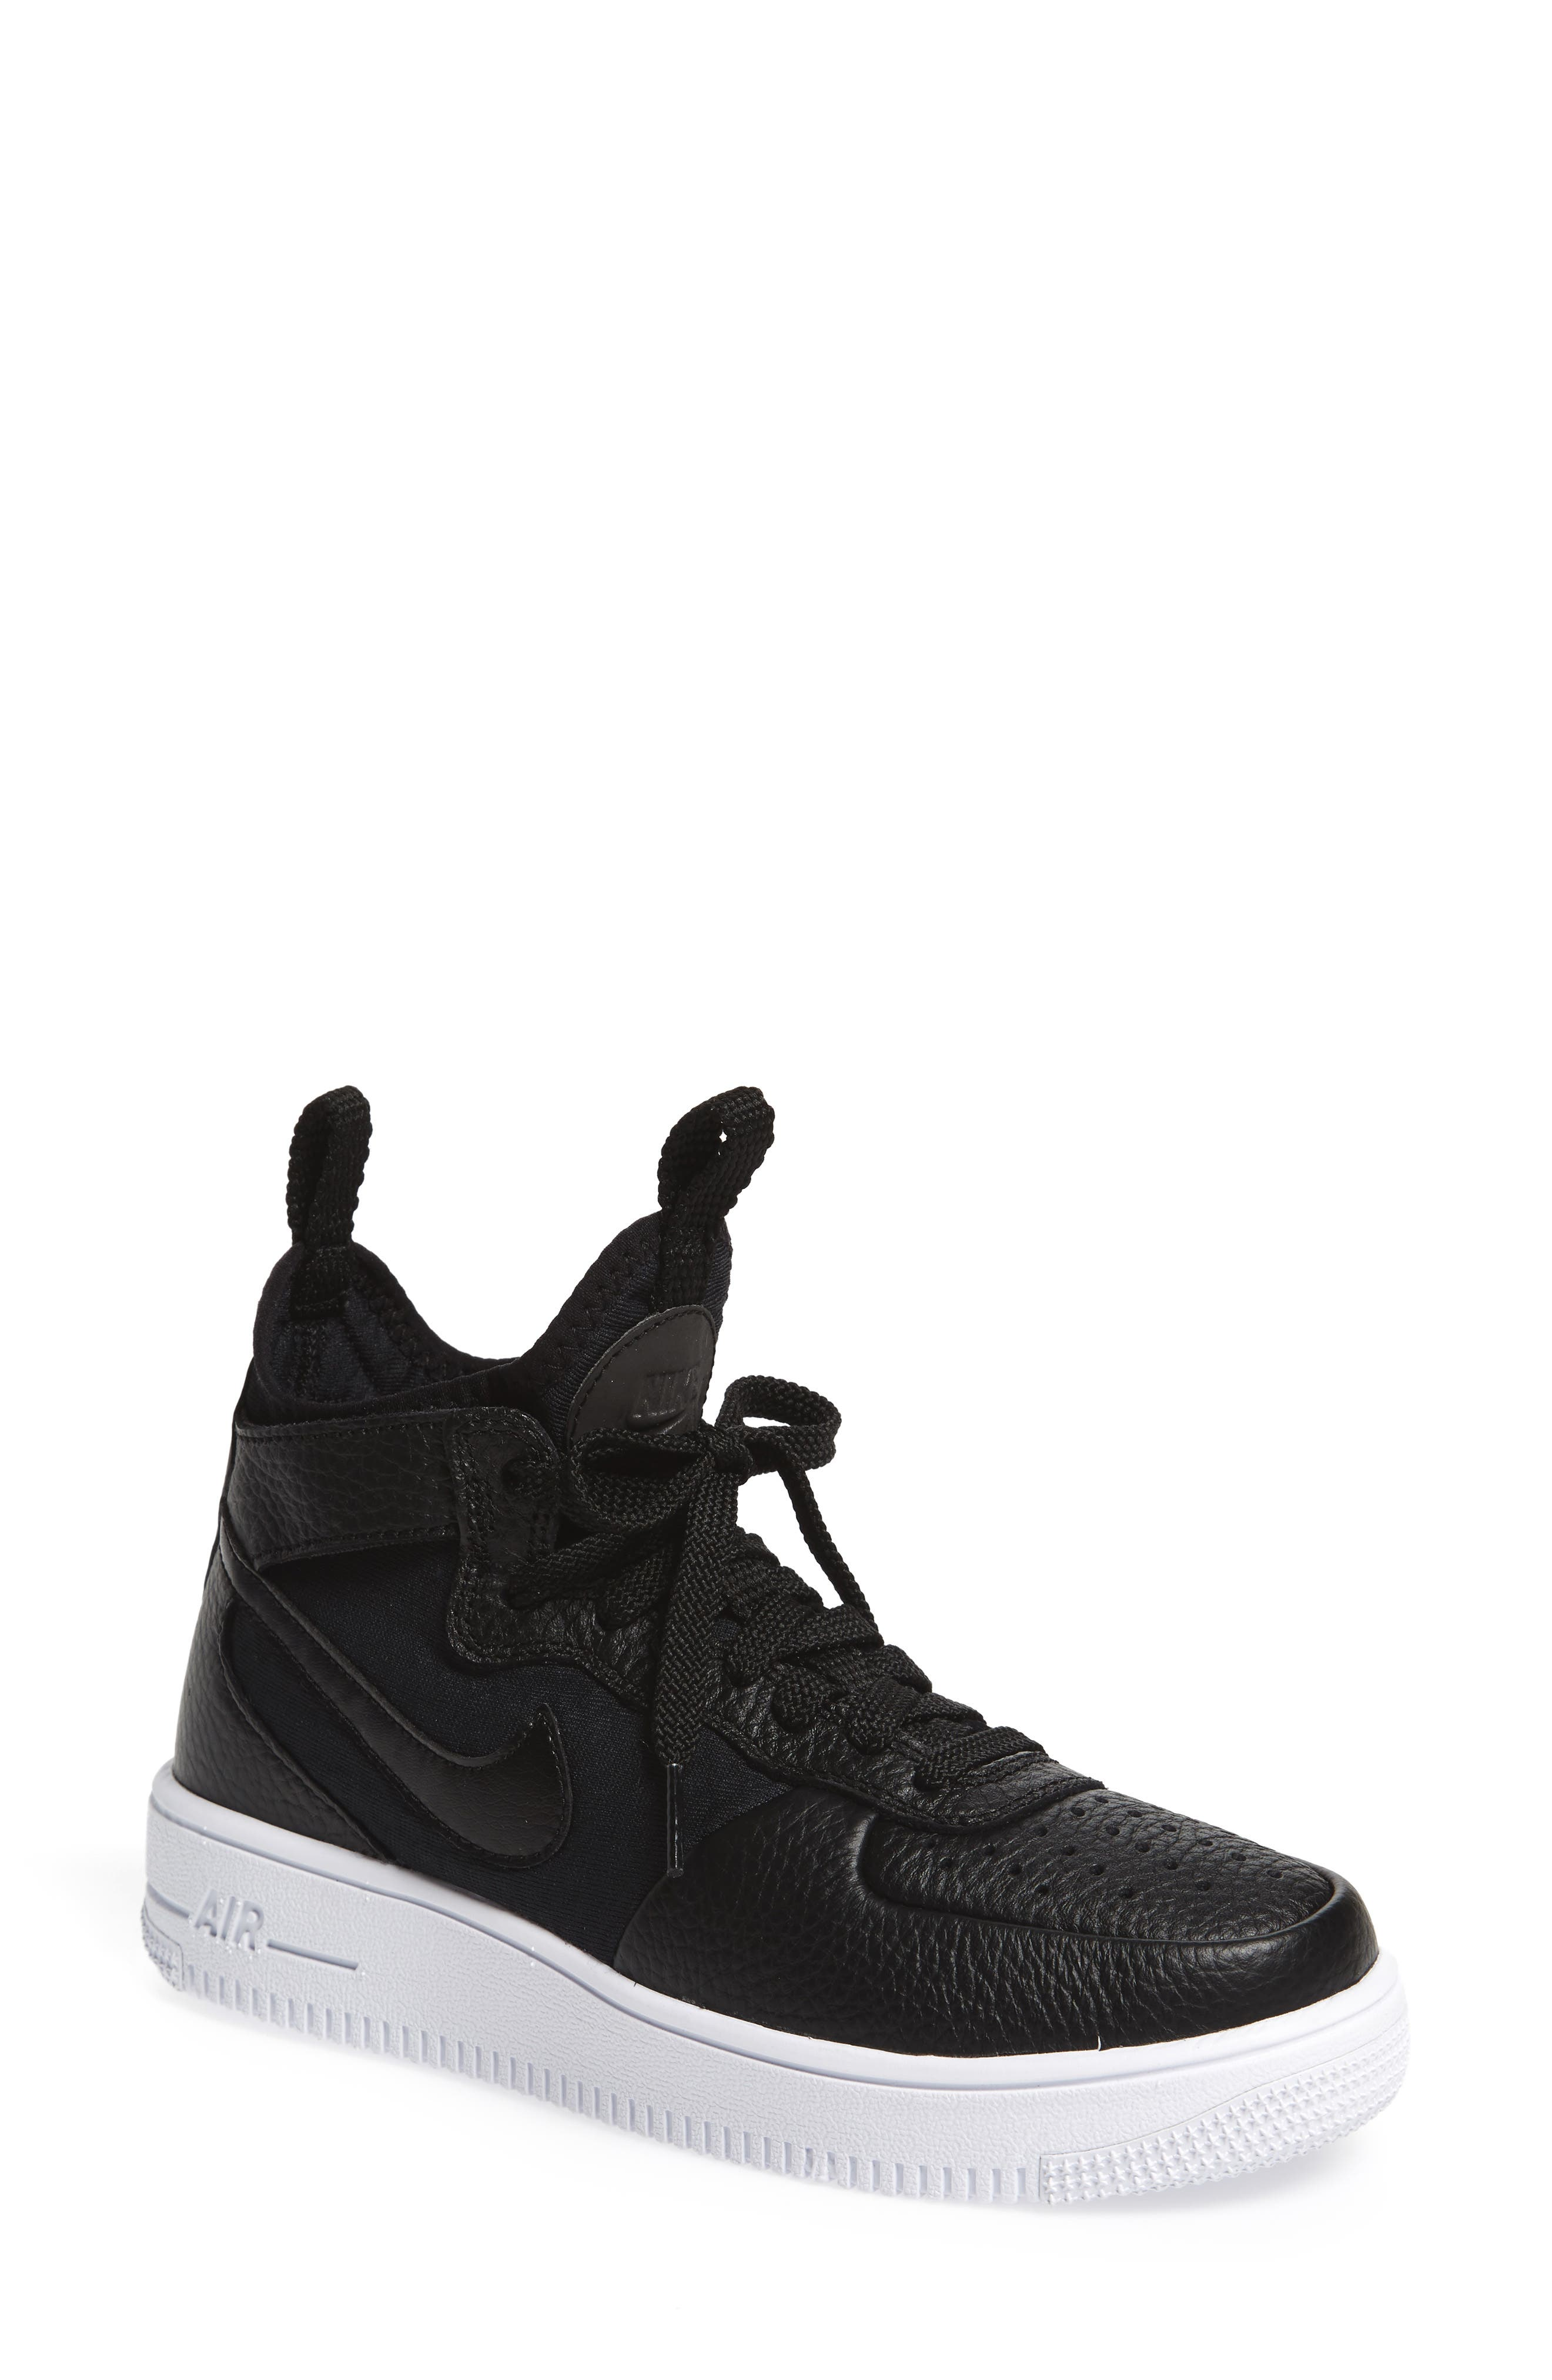 Air Force 1 Ultraforce Mid Sneaker,                         Main,                         color, 005